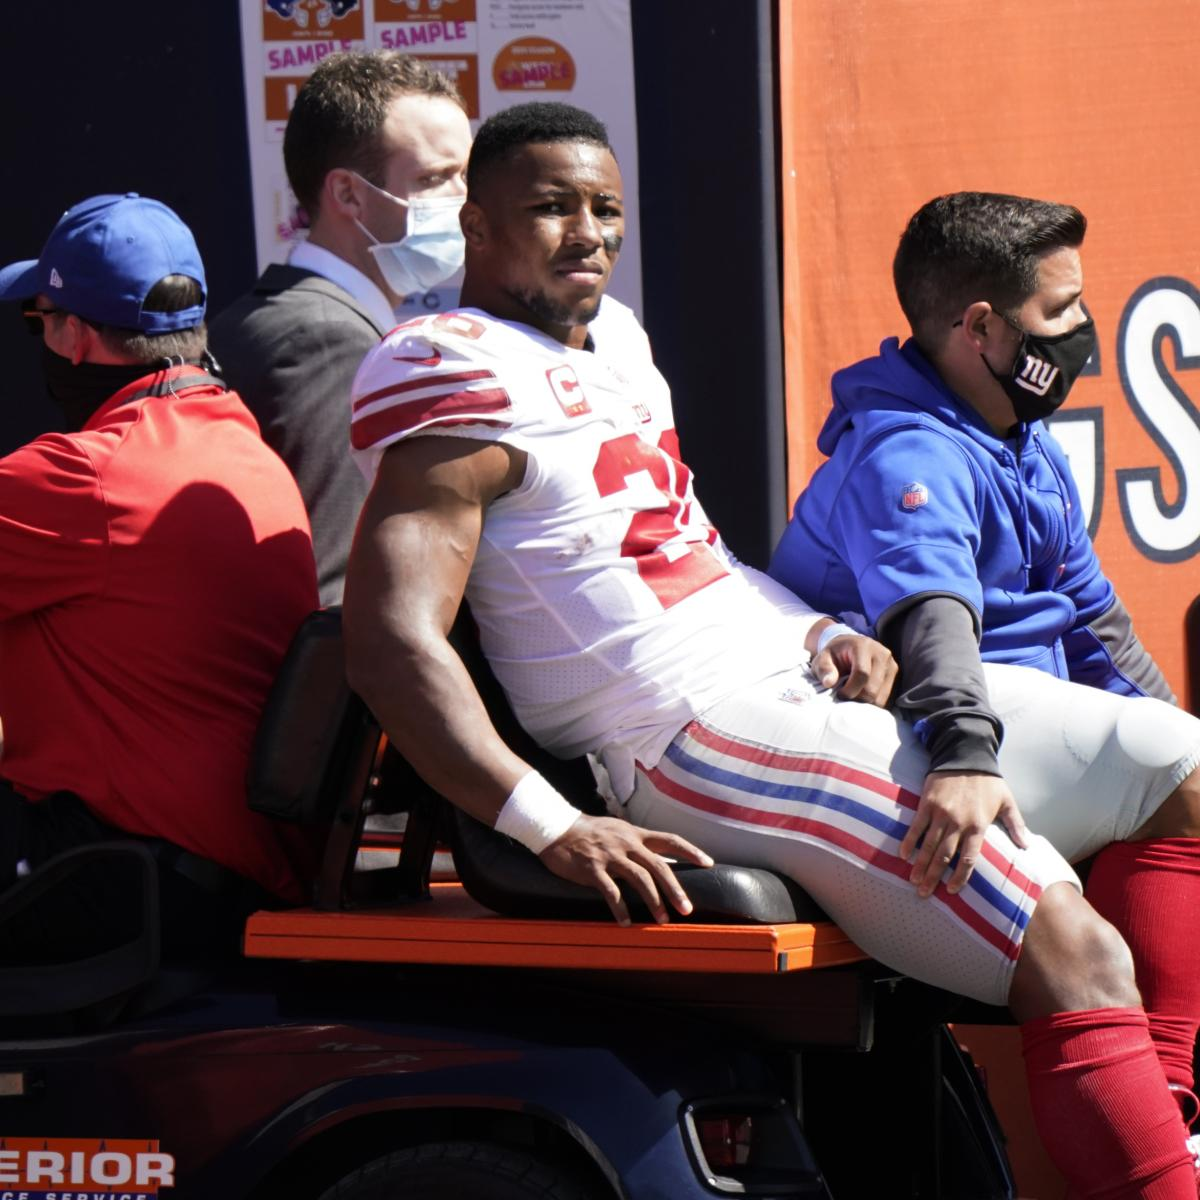 Report: Giants' Saquon Barkley to Undergo Surgery on Torn ACL Injury Next Week